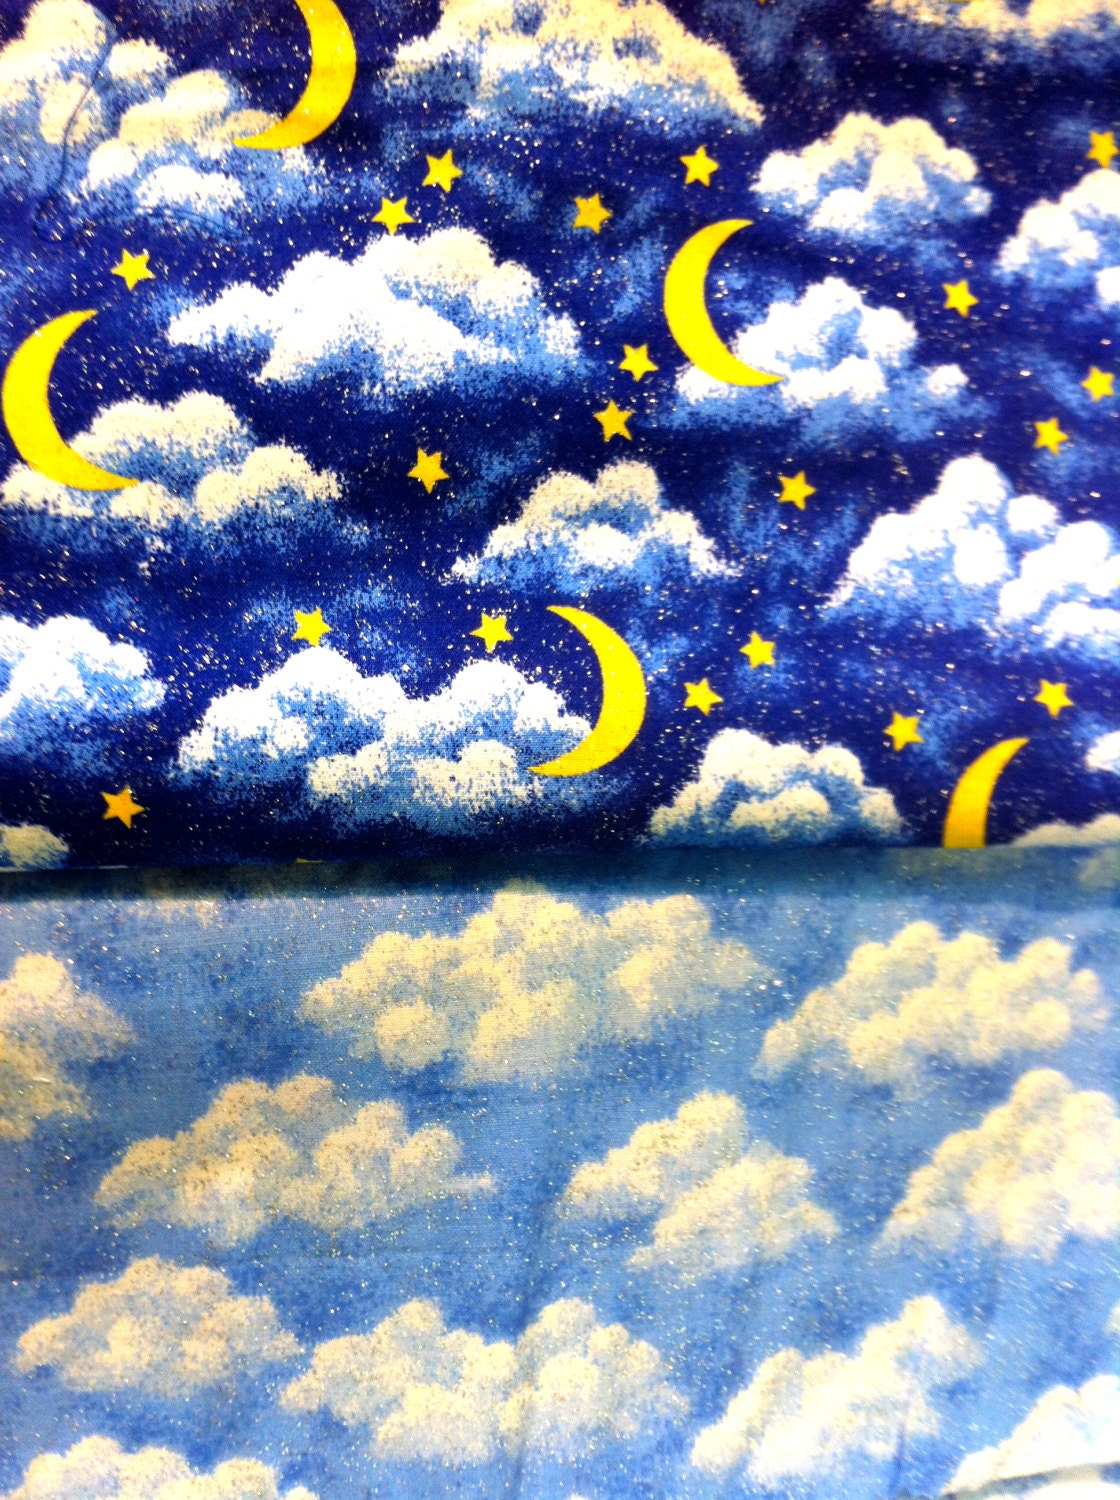 Celestial fabric bundle 4 yards clouds and moons fabric for Fabric with moons and stars